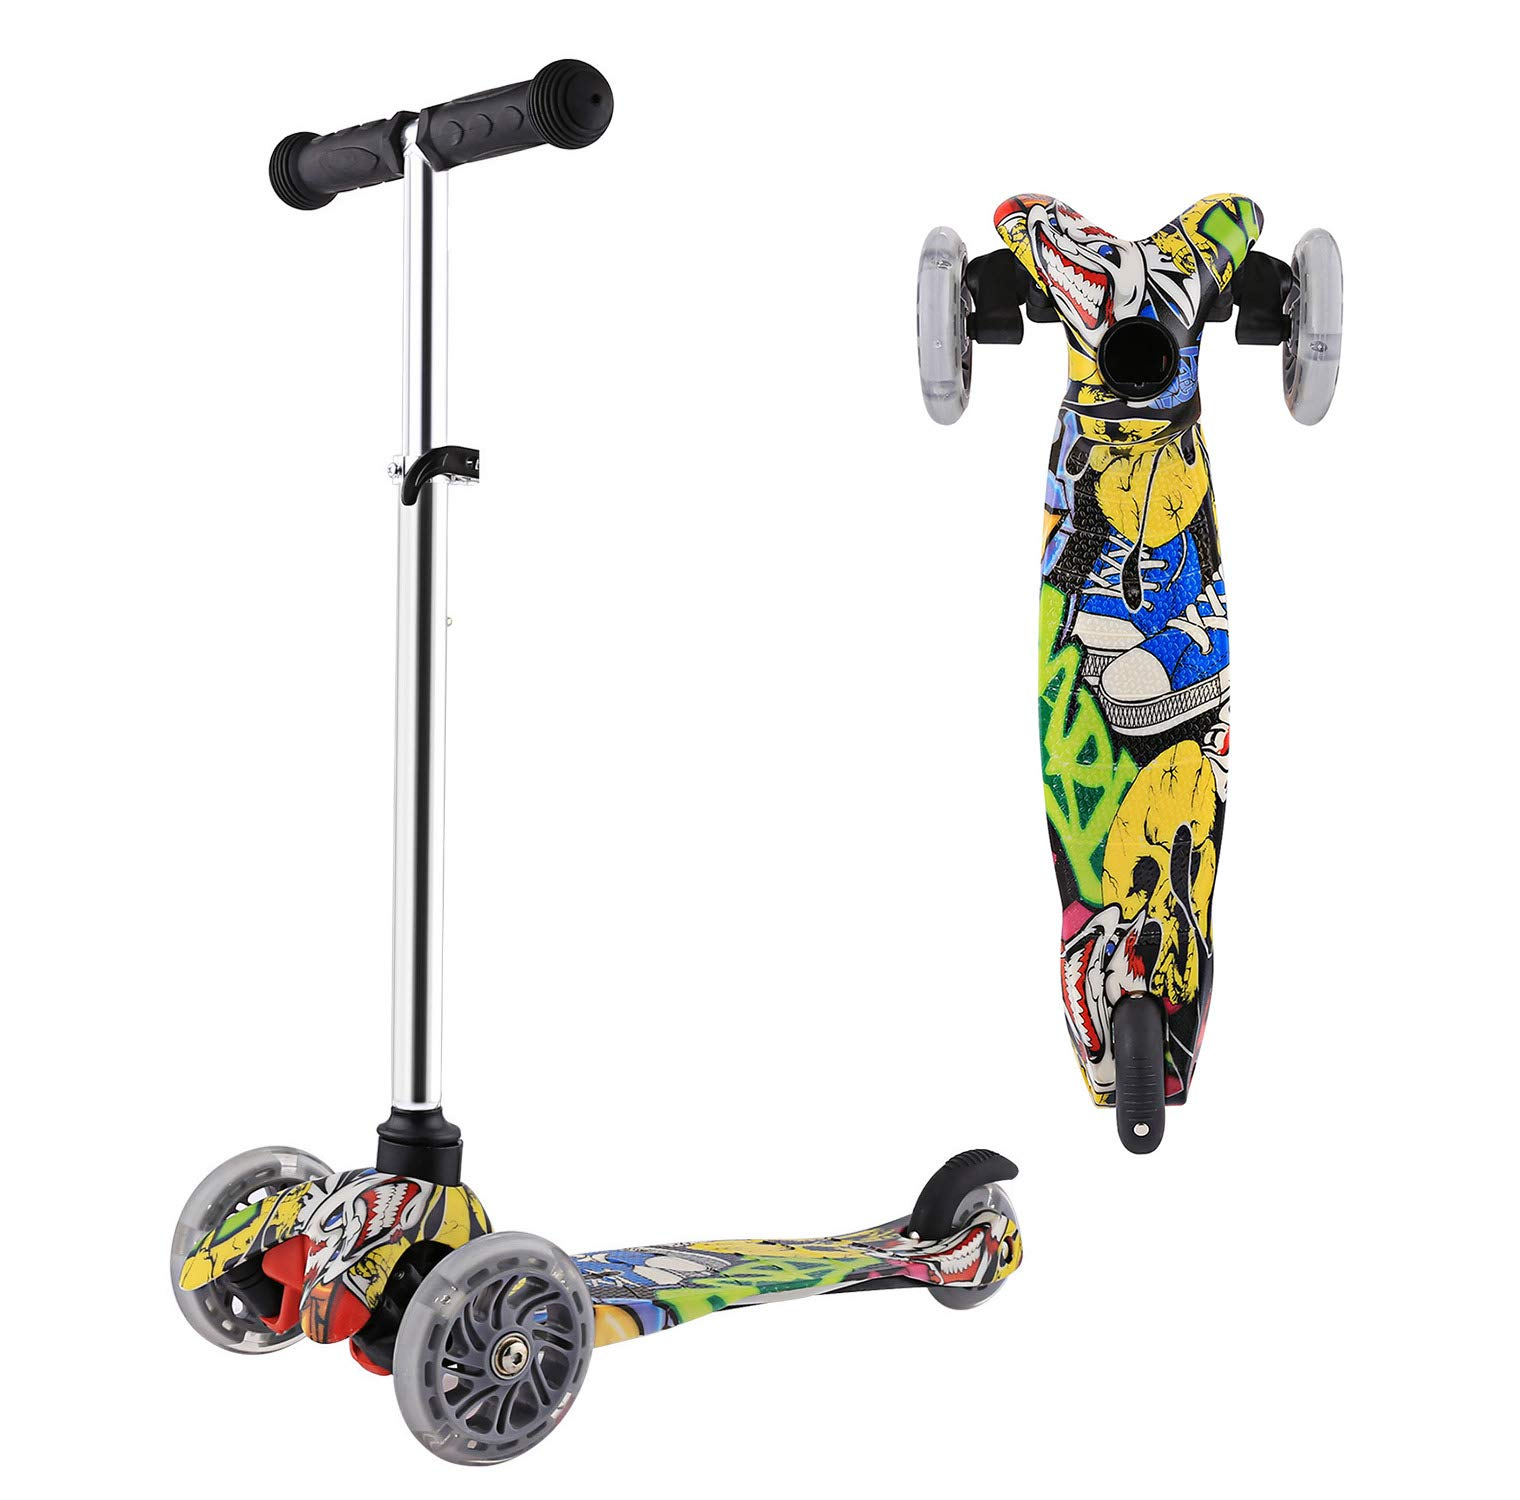 Scooter for Kids 3 Wheel Toddler Scooter with LED Light, Height Adjustable Kids Scooter for Boys Girls Age 2-8 Years Old by YUEBO